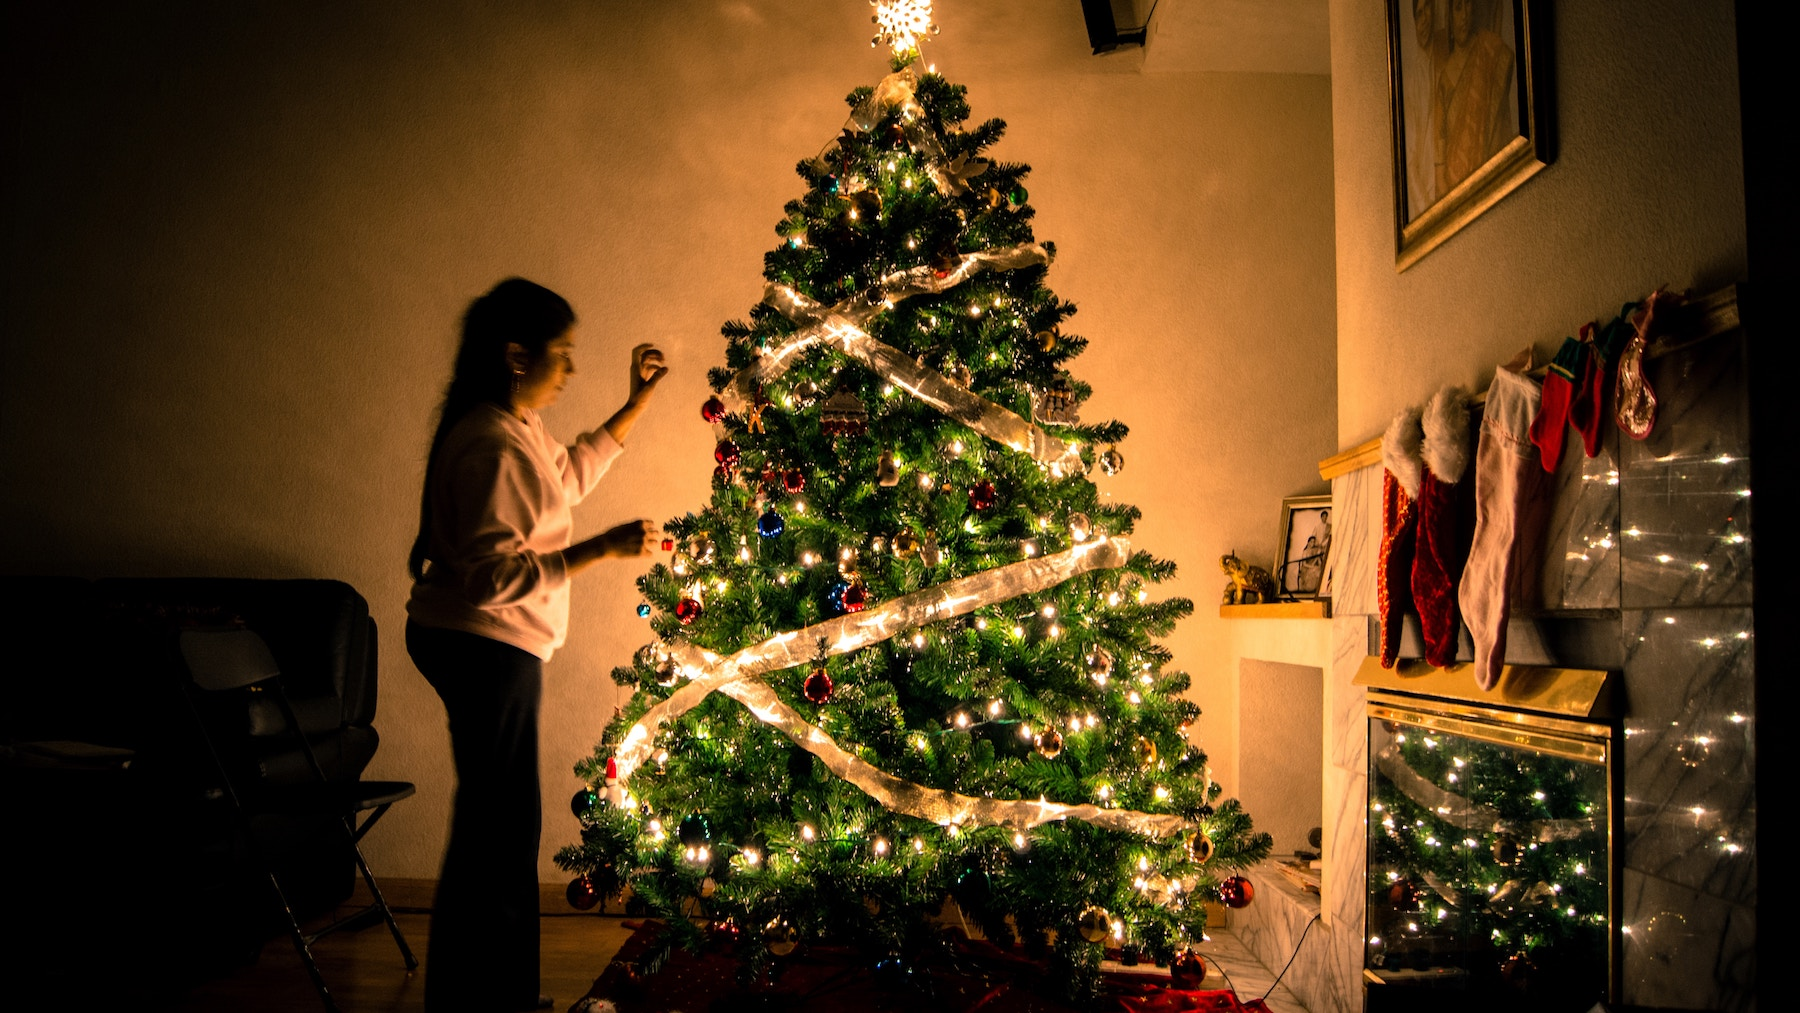 Christmas tree with ribbon and woman decorating